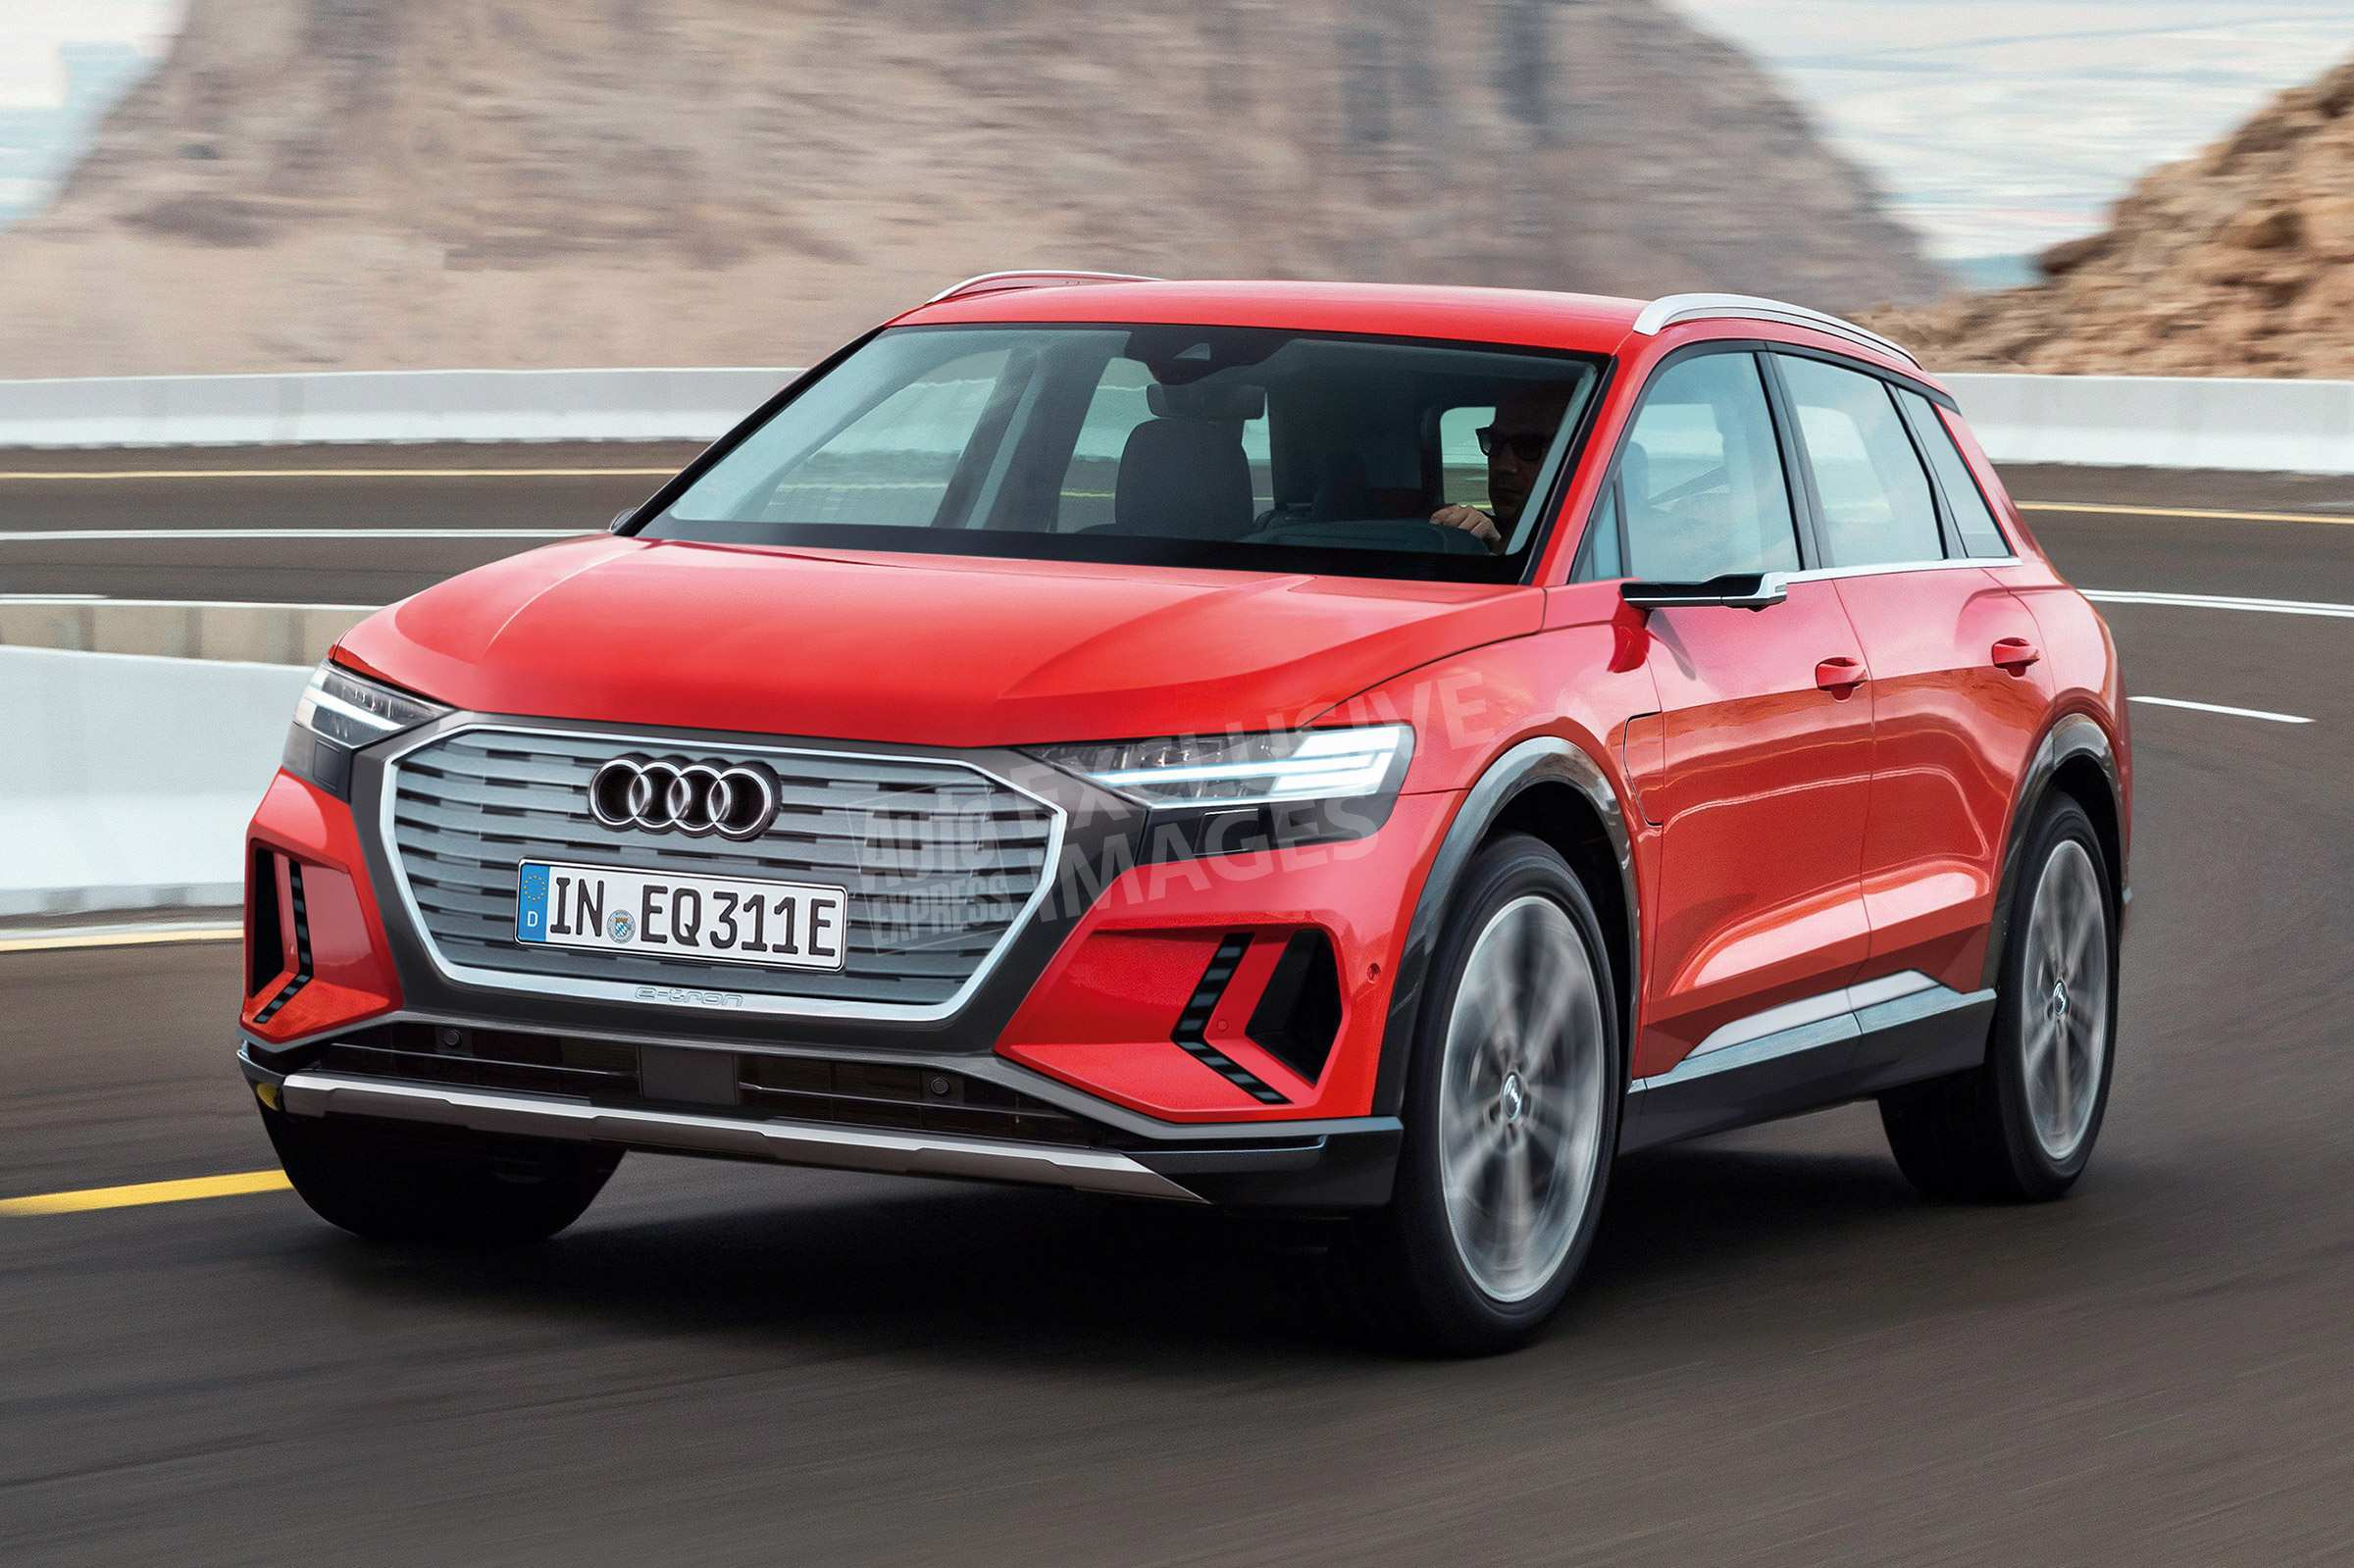 98 The Best 2020 Audi E Tron Suv Research New